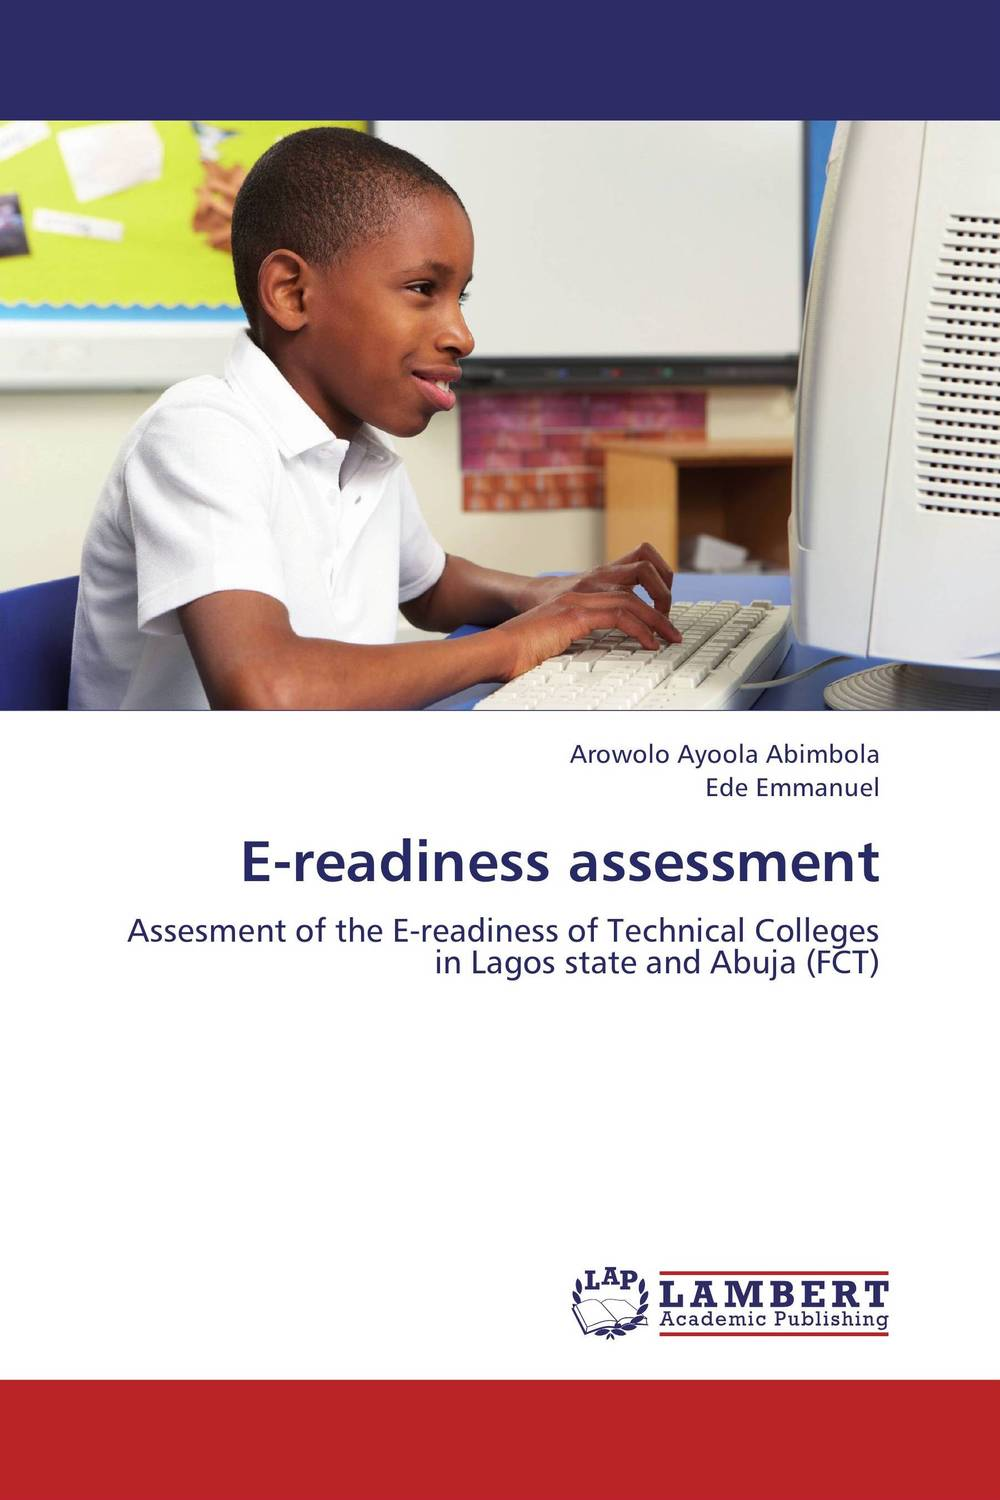 E-readiness assessment the use of ict for learning at dinaledi school in the limpopo province